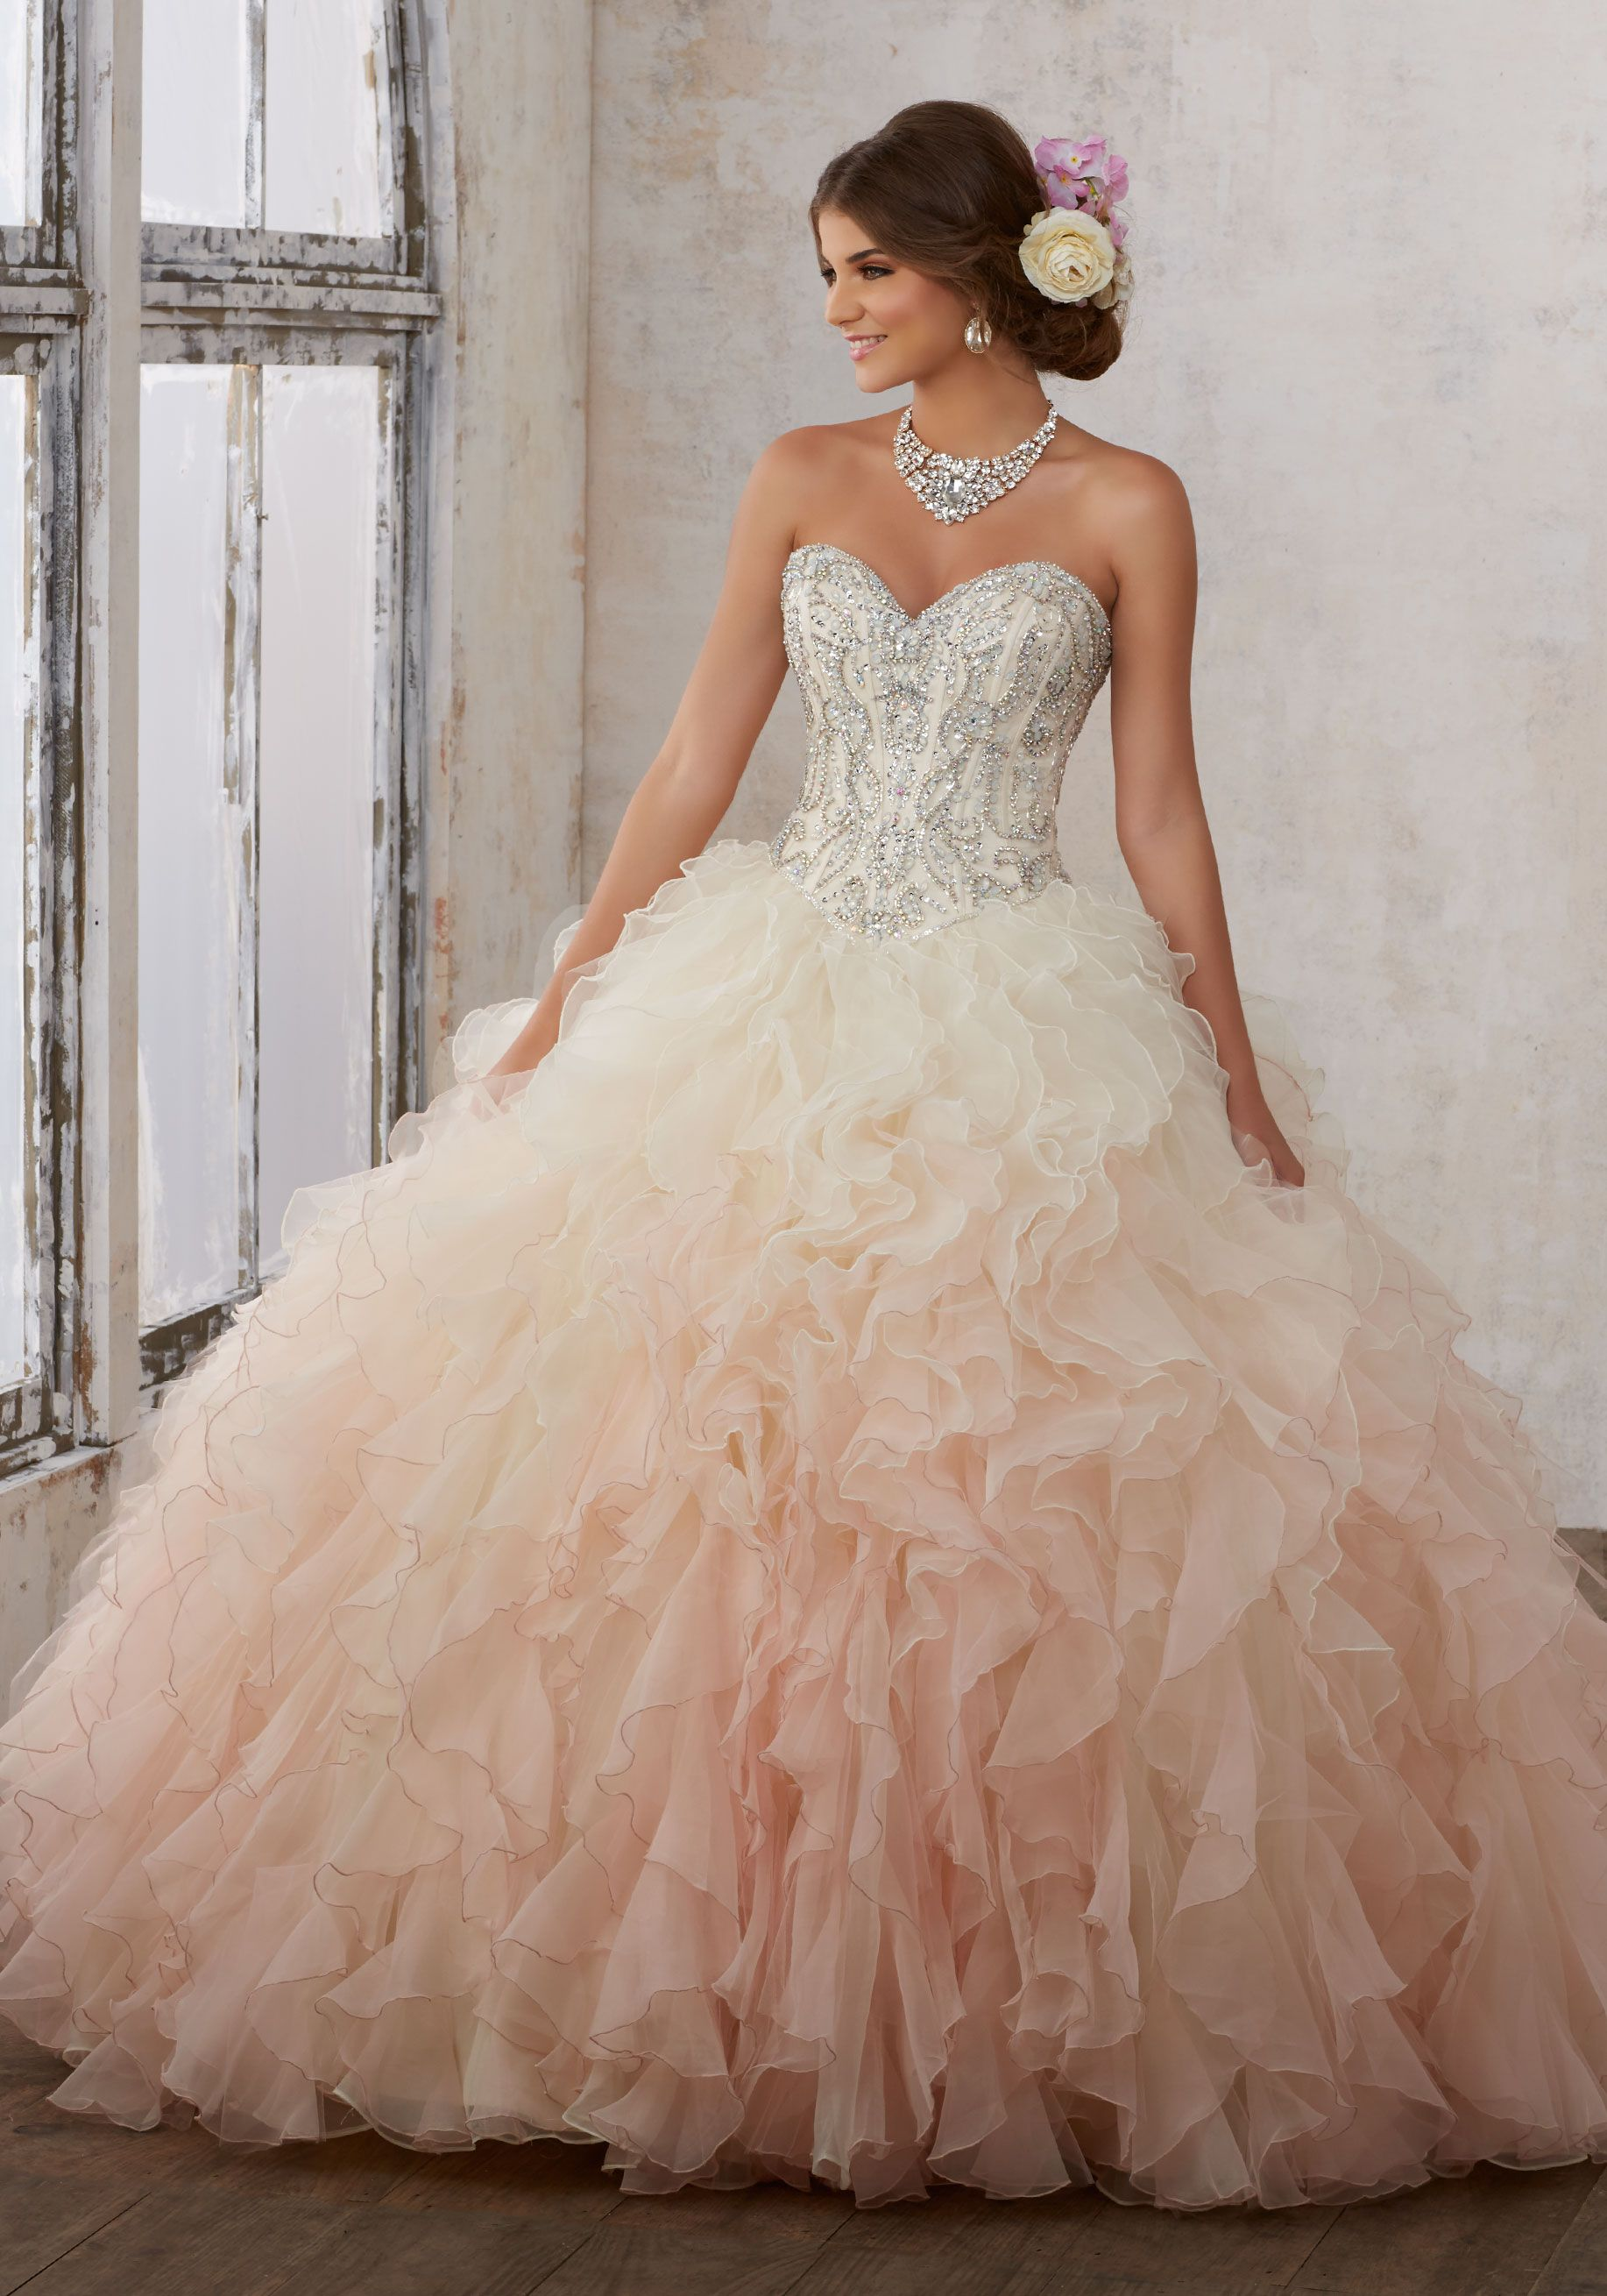 Morilee Quinceanera Dresses STYLE NUMBER  89123 Moonstone Jeweled Beading on  a Ruffled Organza Ballgown Organza Quinceañera Dress with Jewel Beaded ... b489cc0f63f5